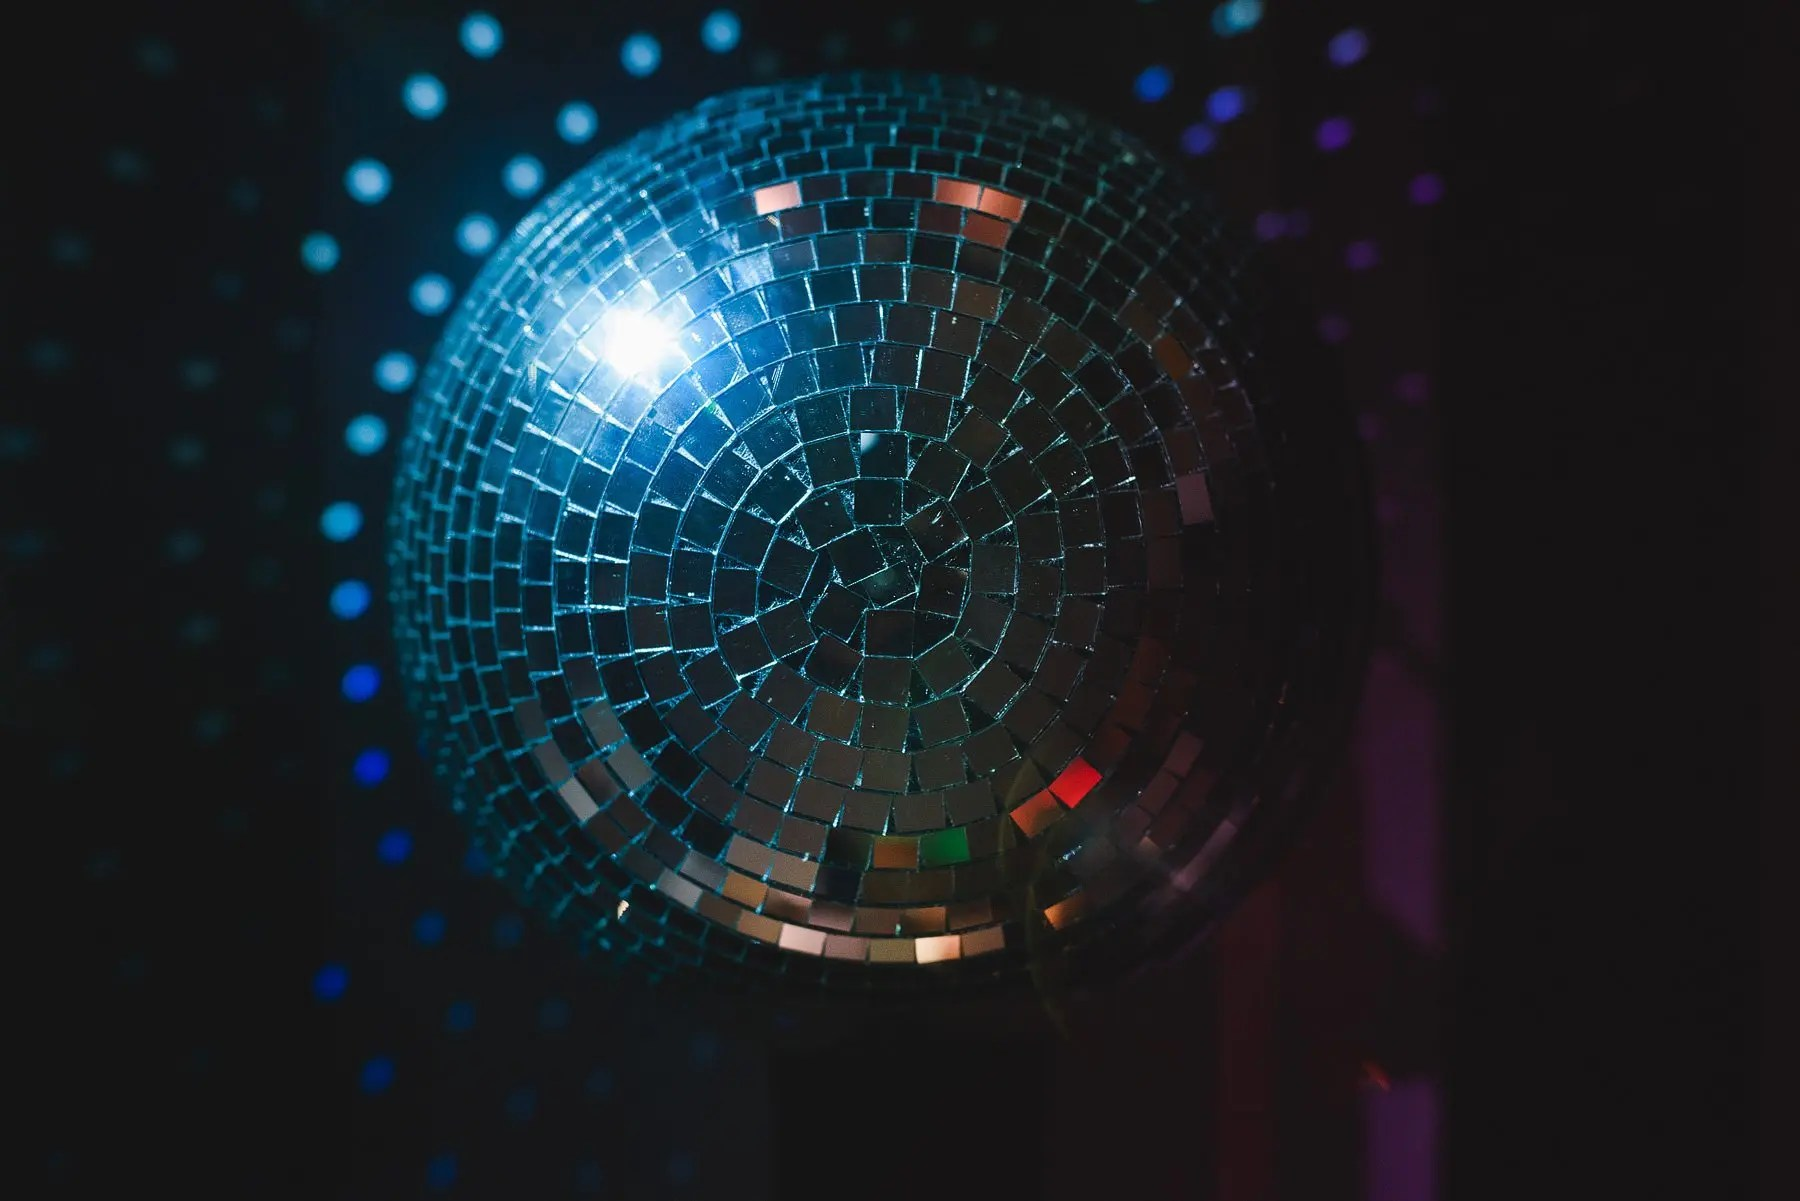 disco ball at a wedding